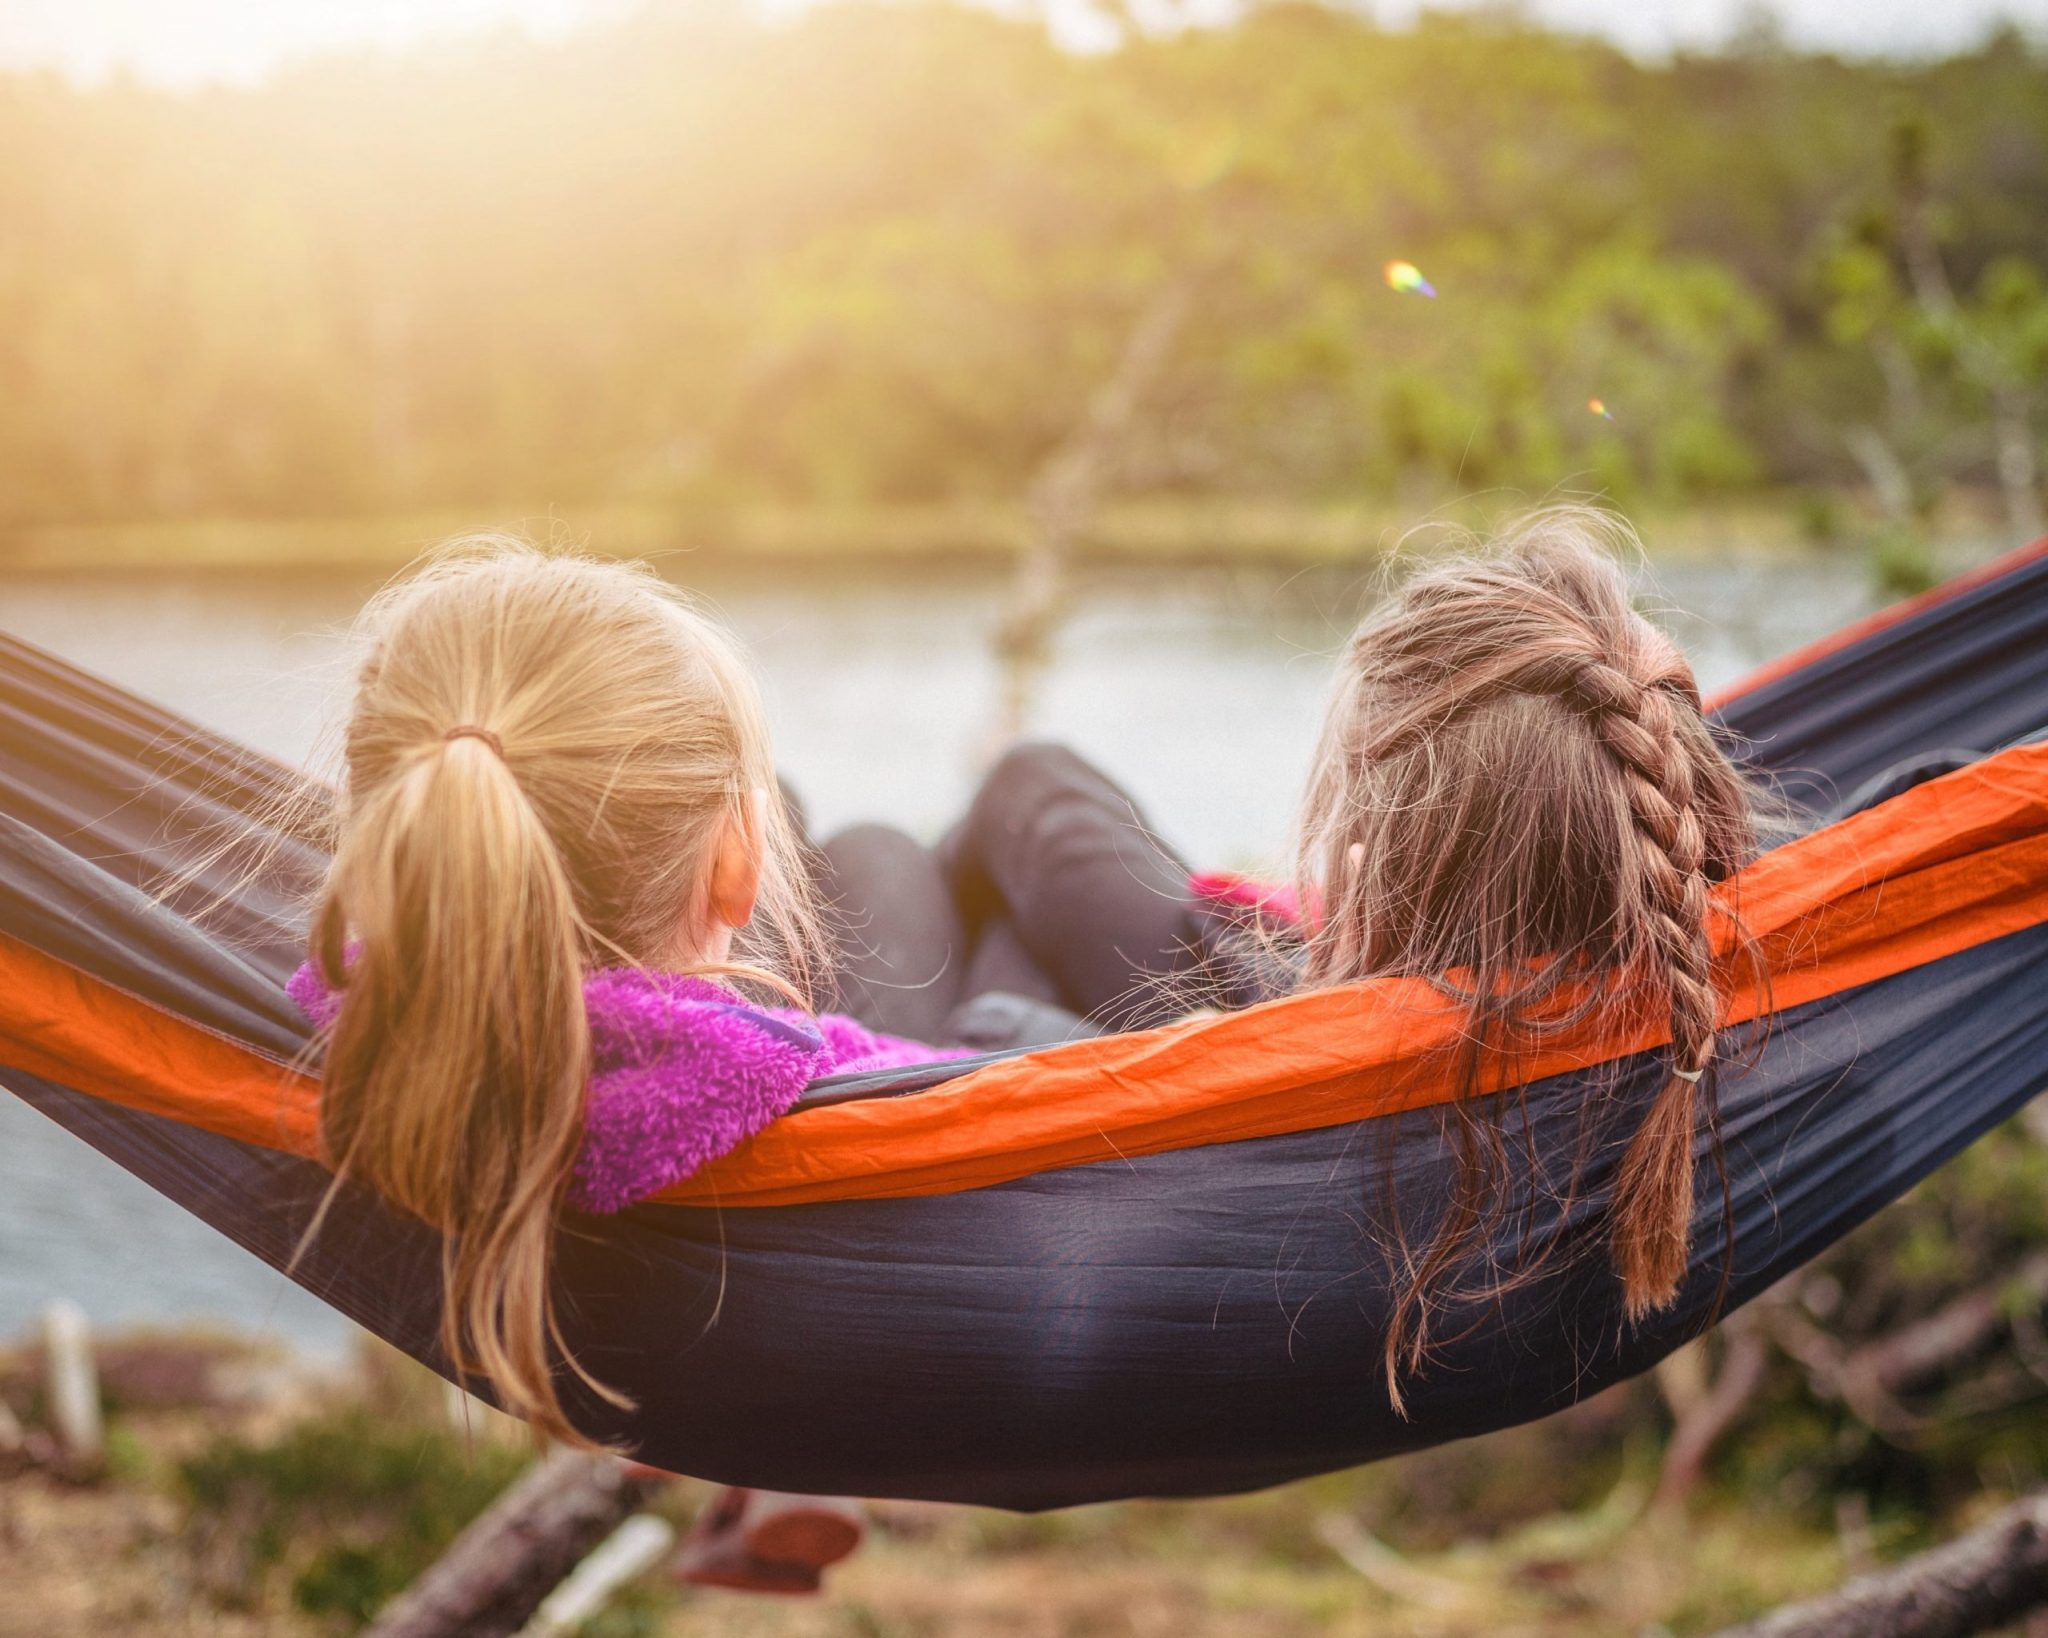 A hammock with two people with long hair sitting together